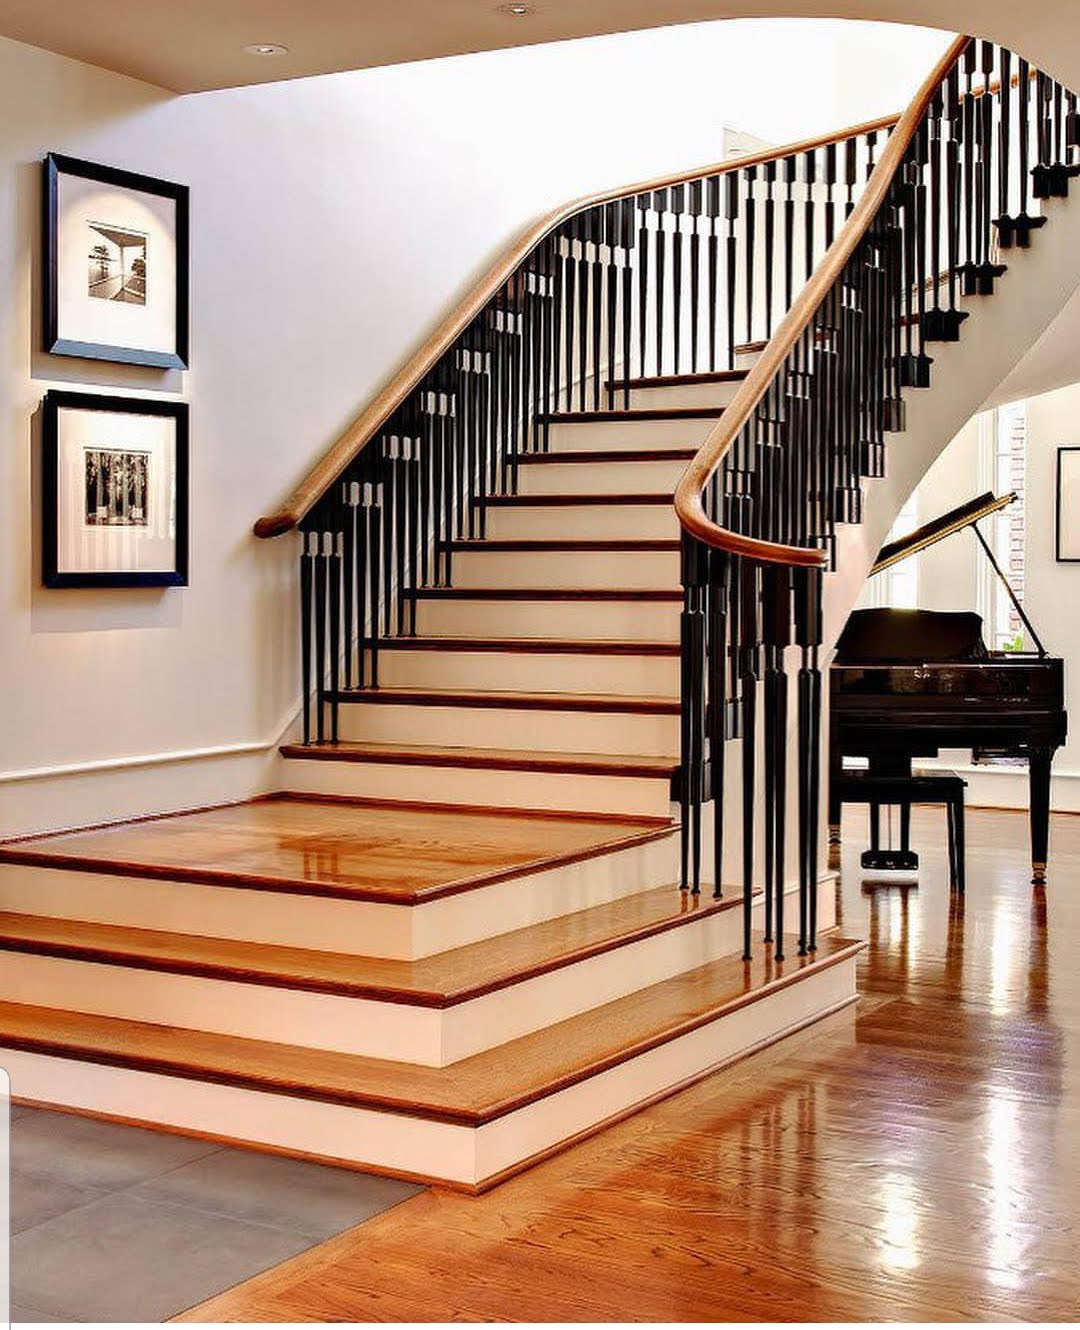 Private Res Staircase 2.jpg